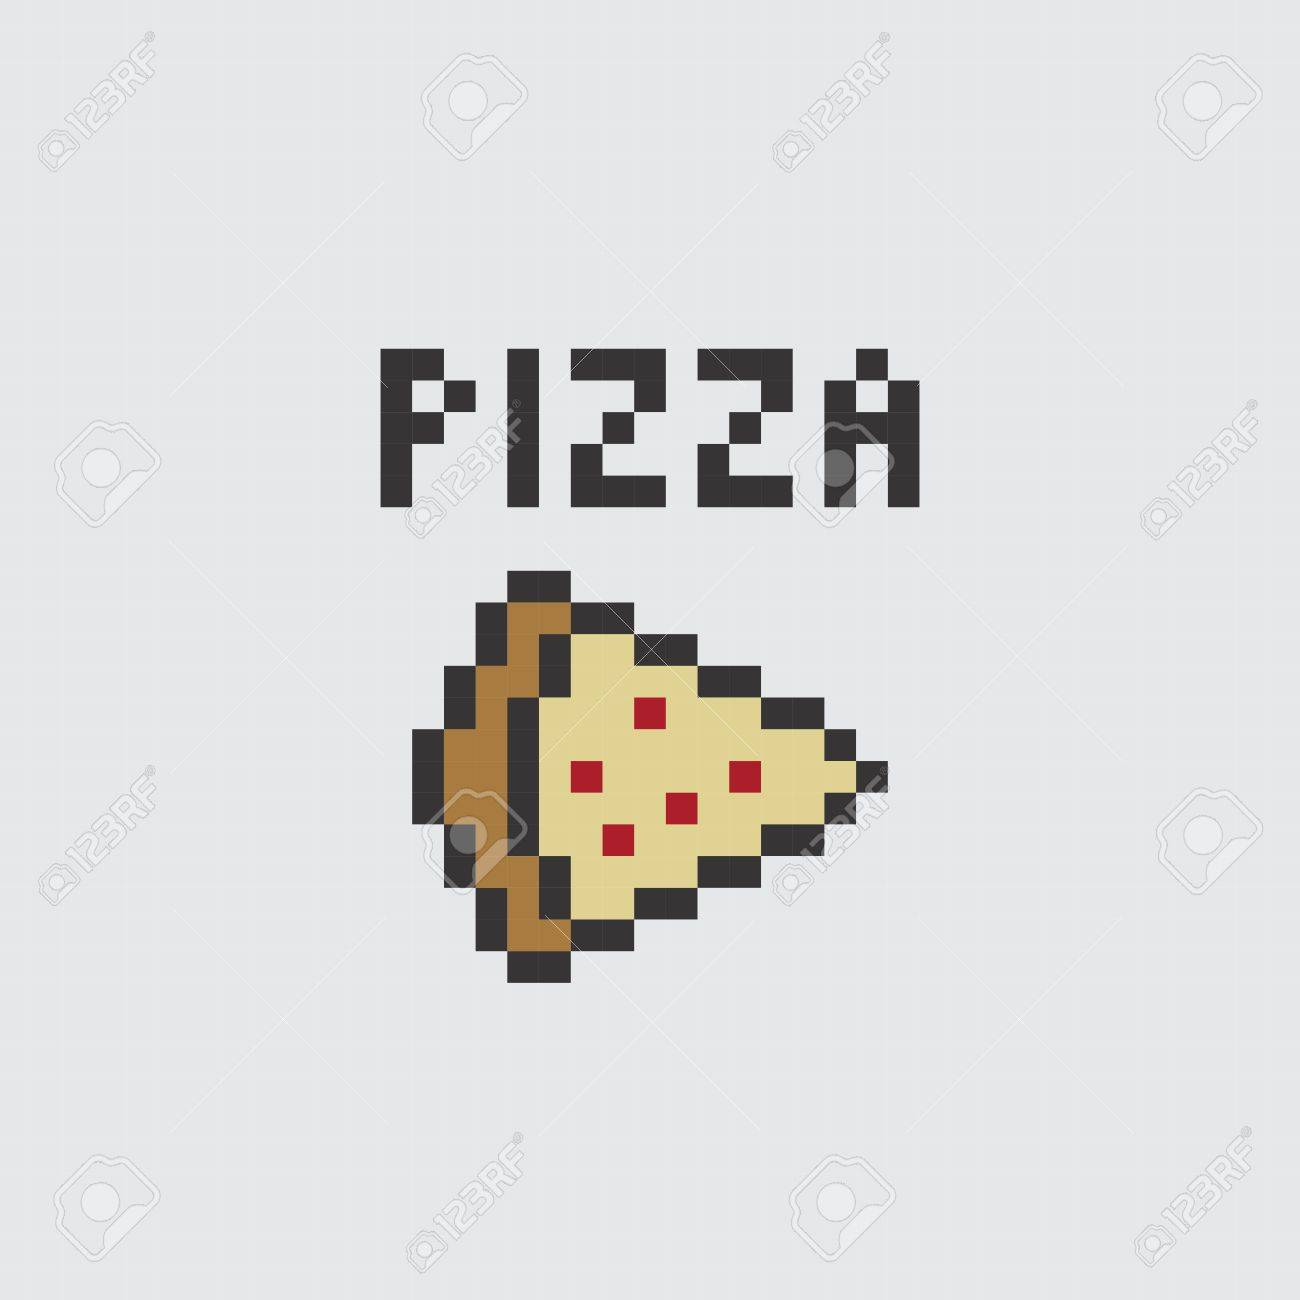 Pixel Art Food And Drink Theme